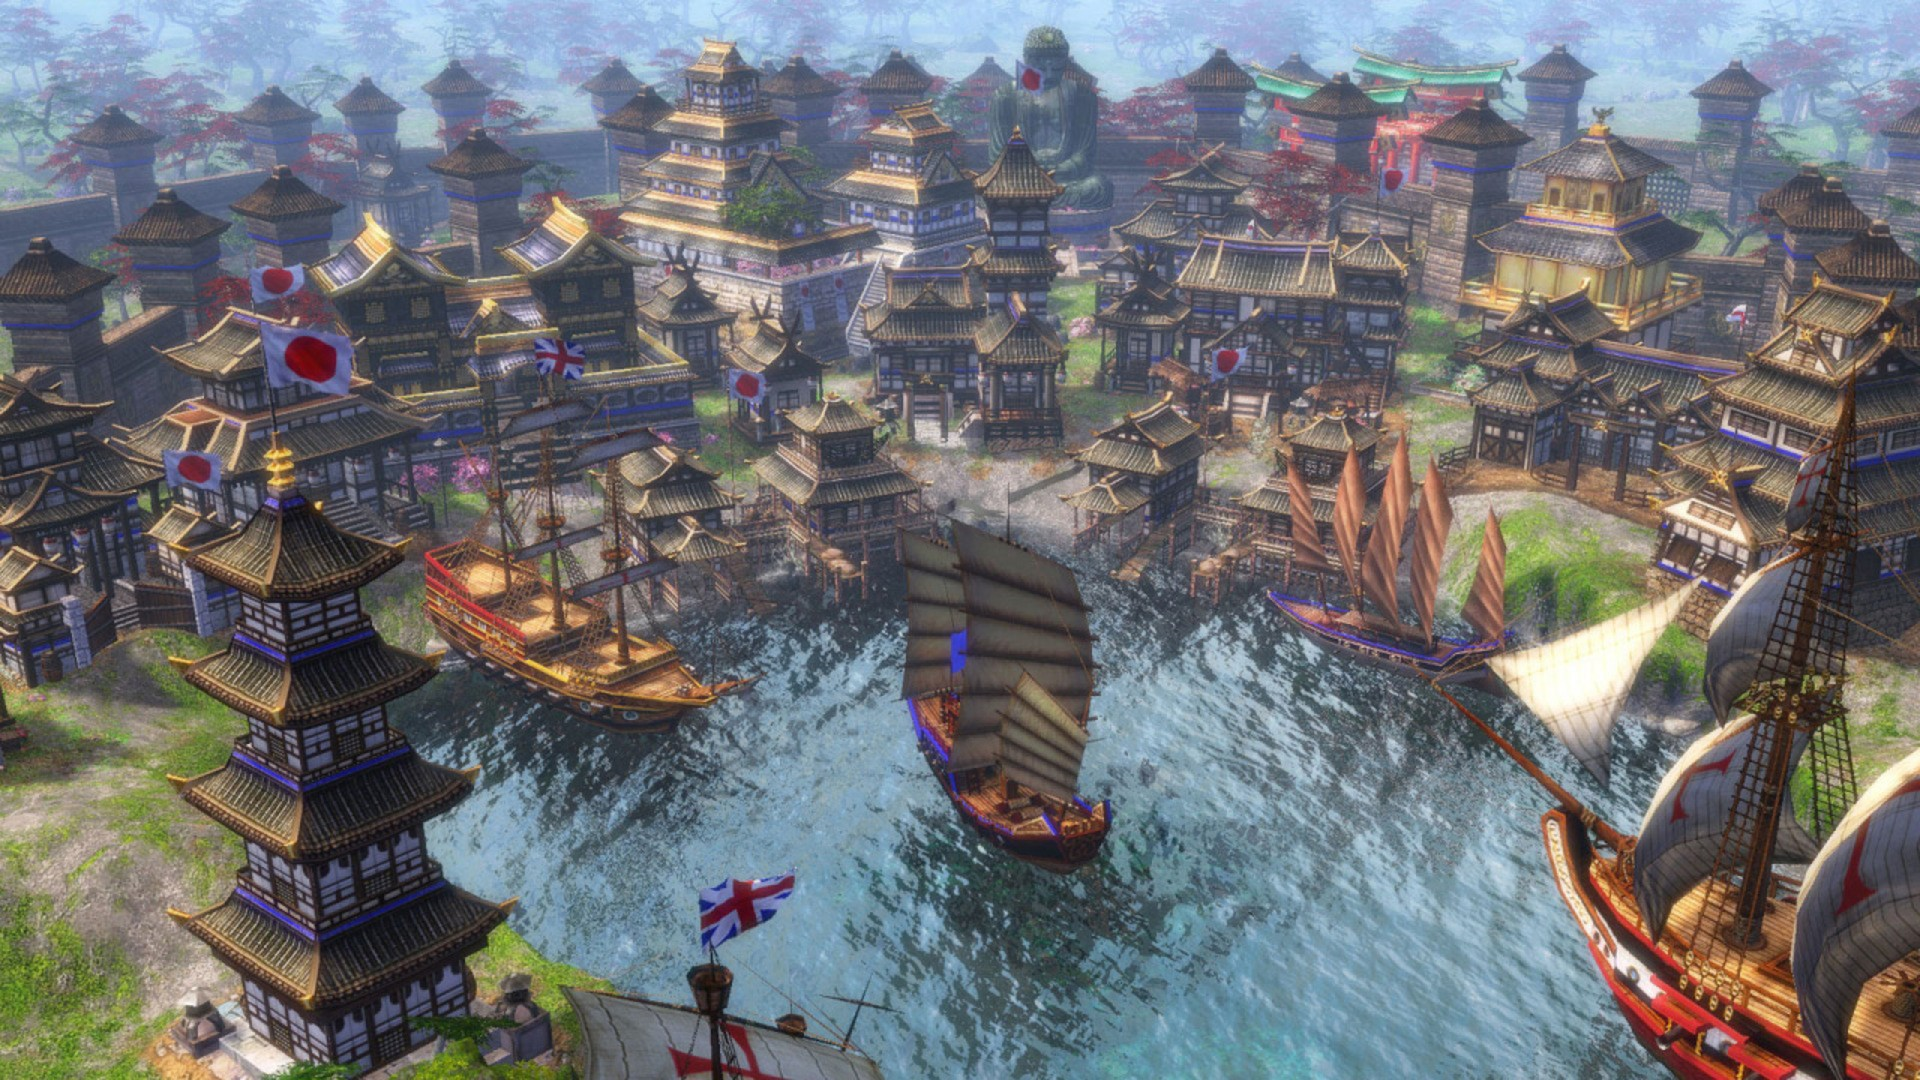 Age Of Empires III Pics, Video Game Collection